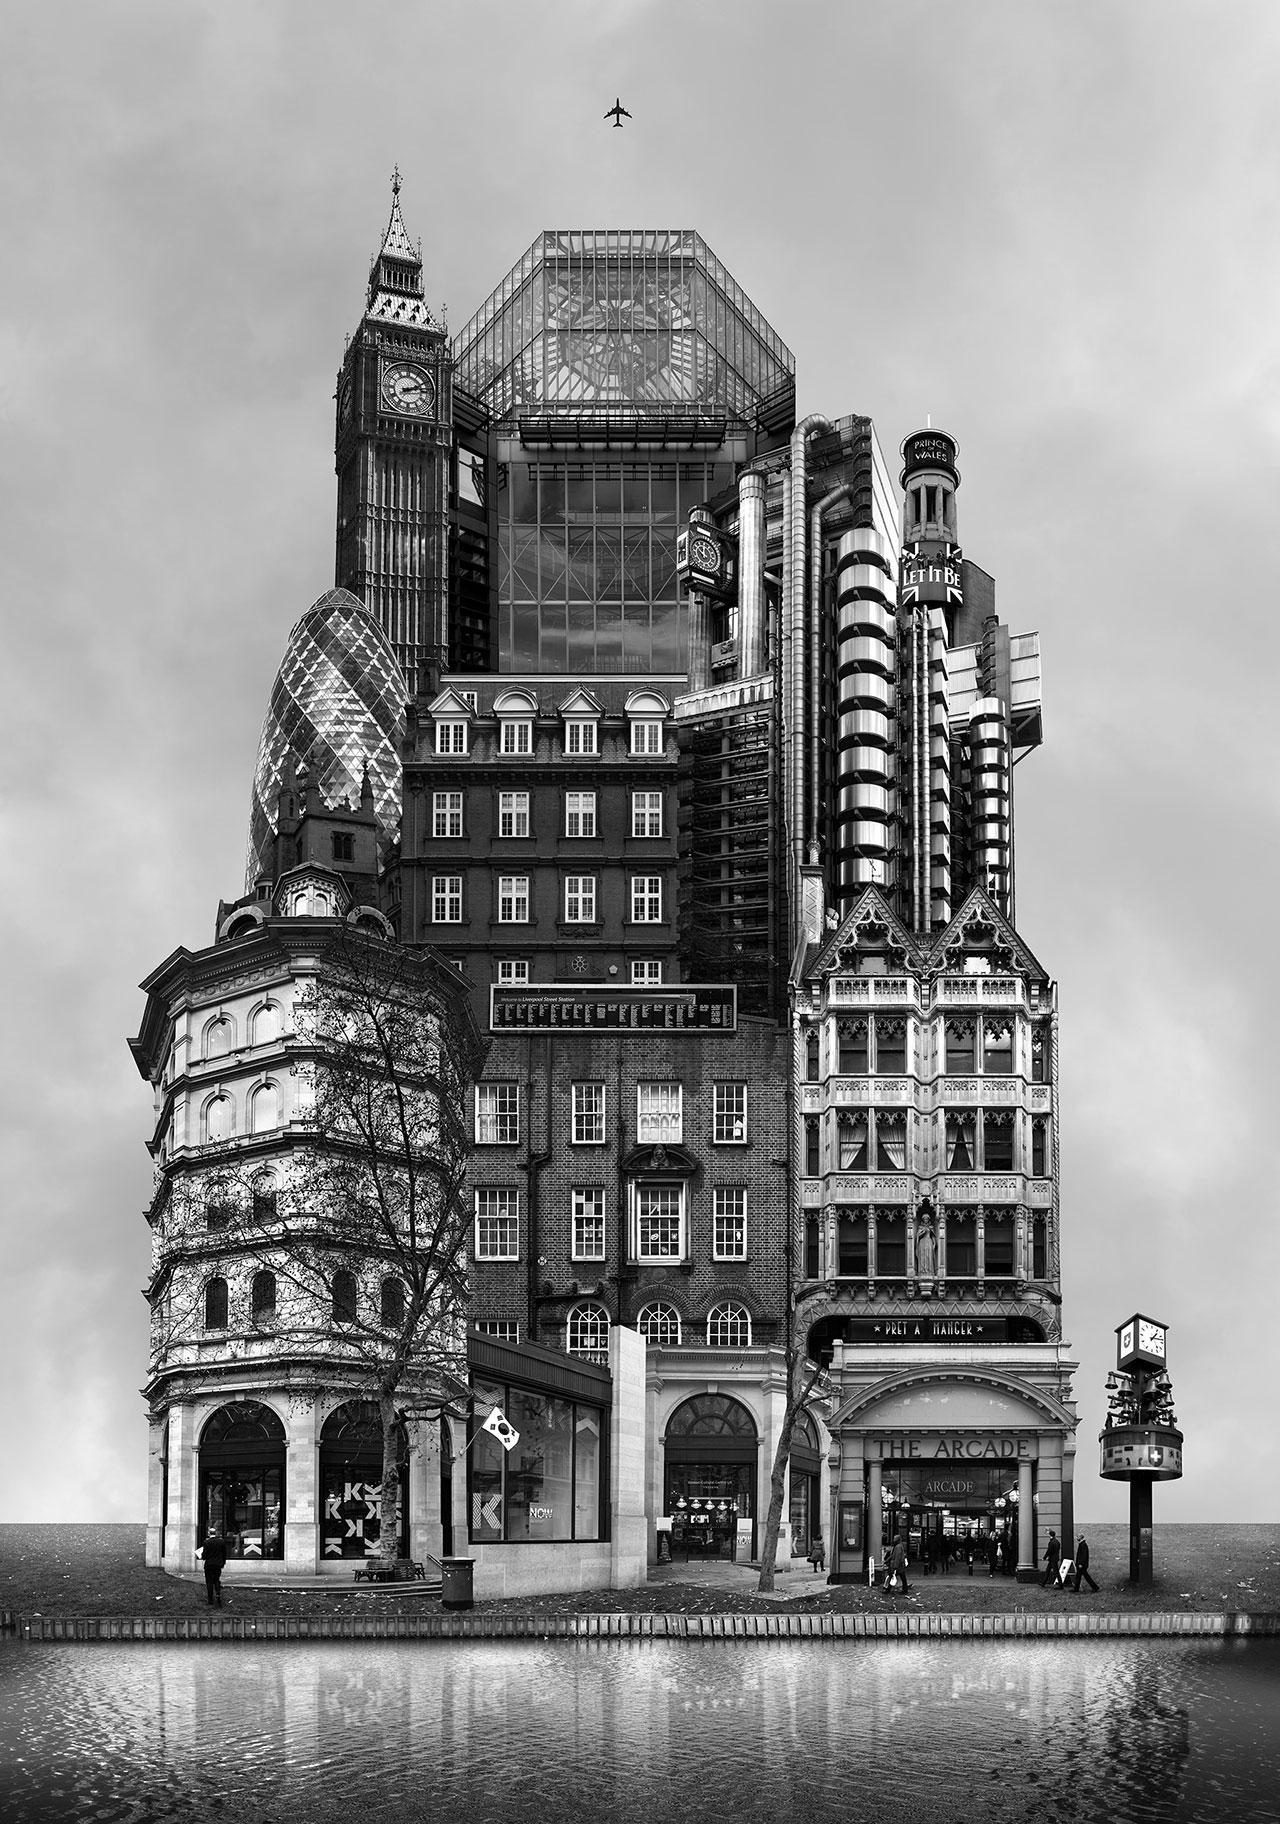 Beomsik Won,Archisculpture 013, 2012. Archival pigment print, 100x70 or 171x120cm.